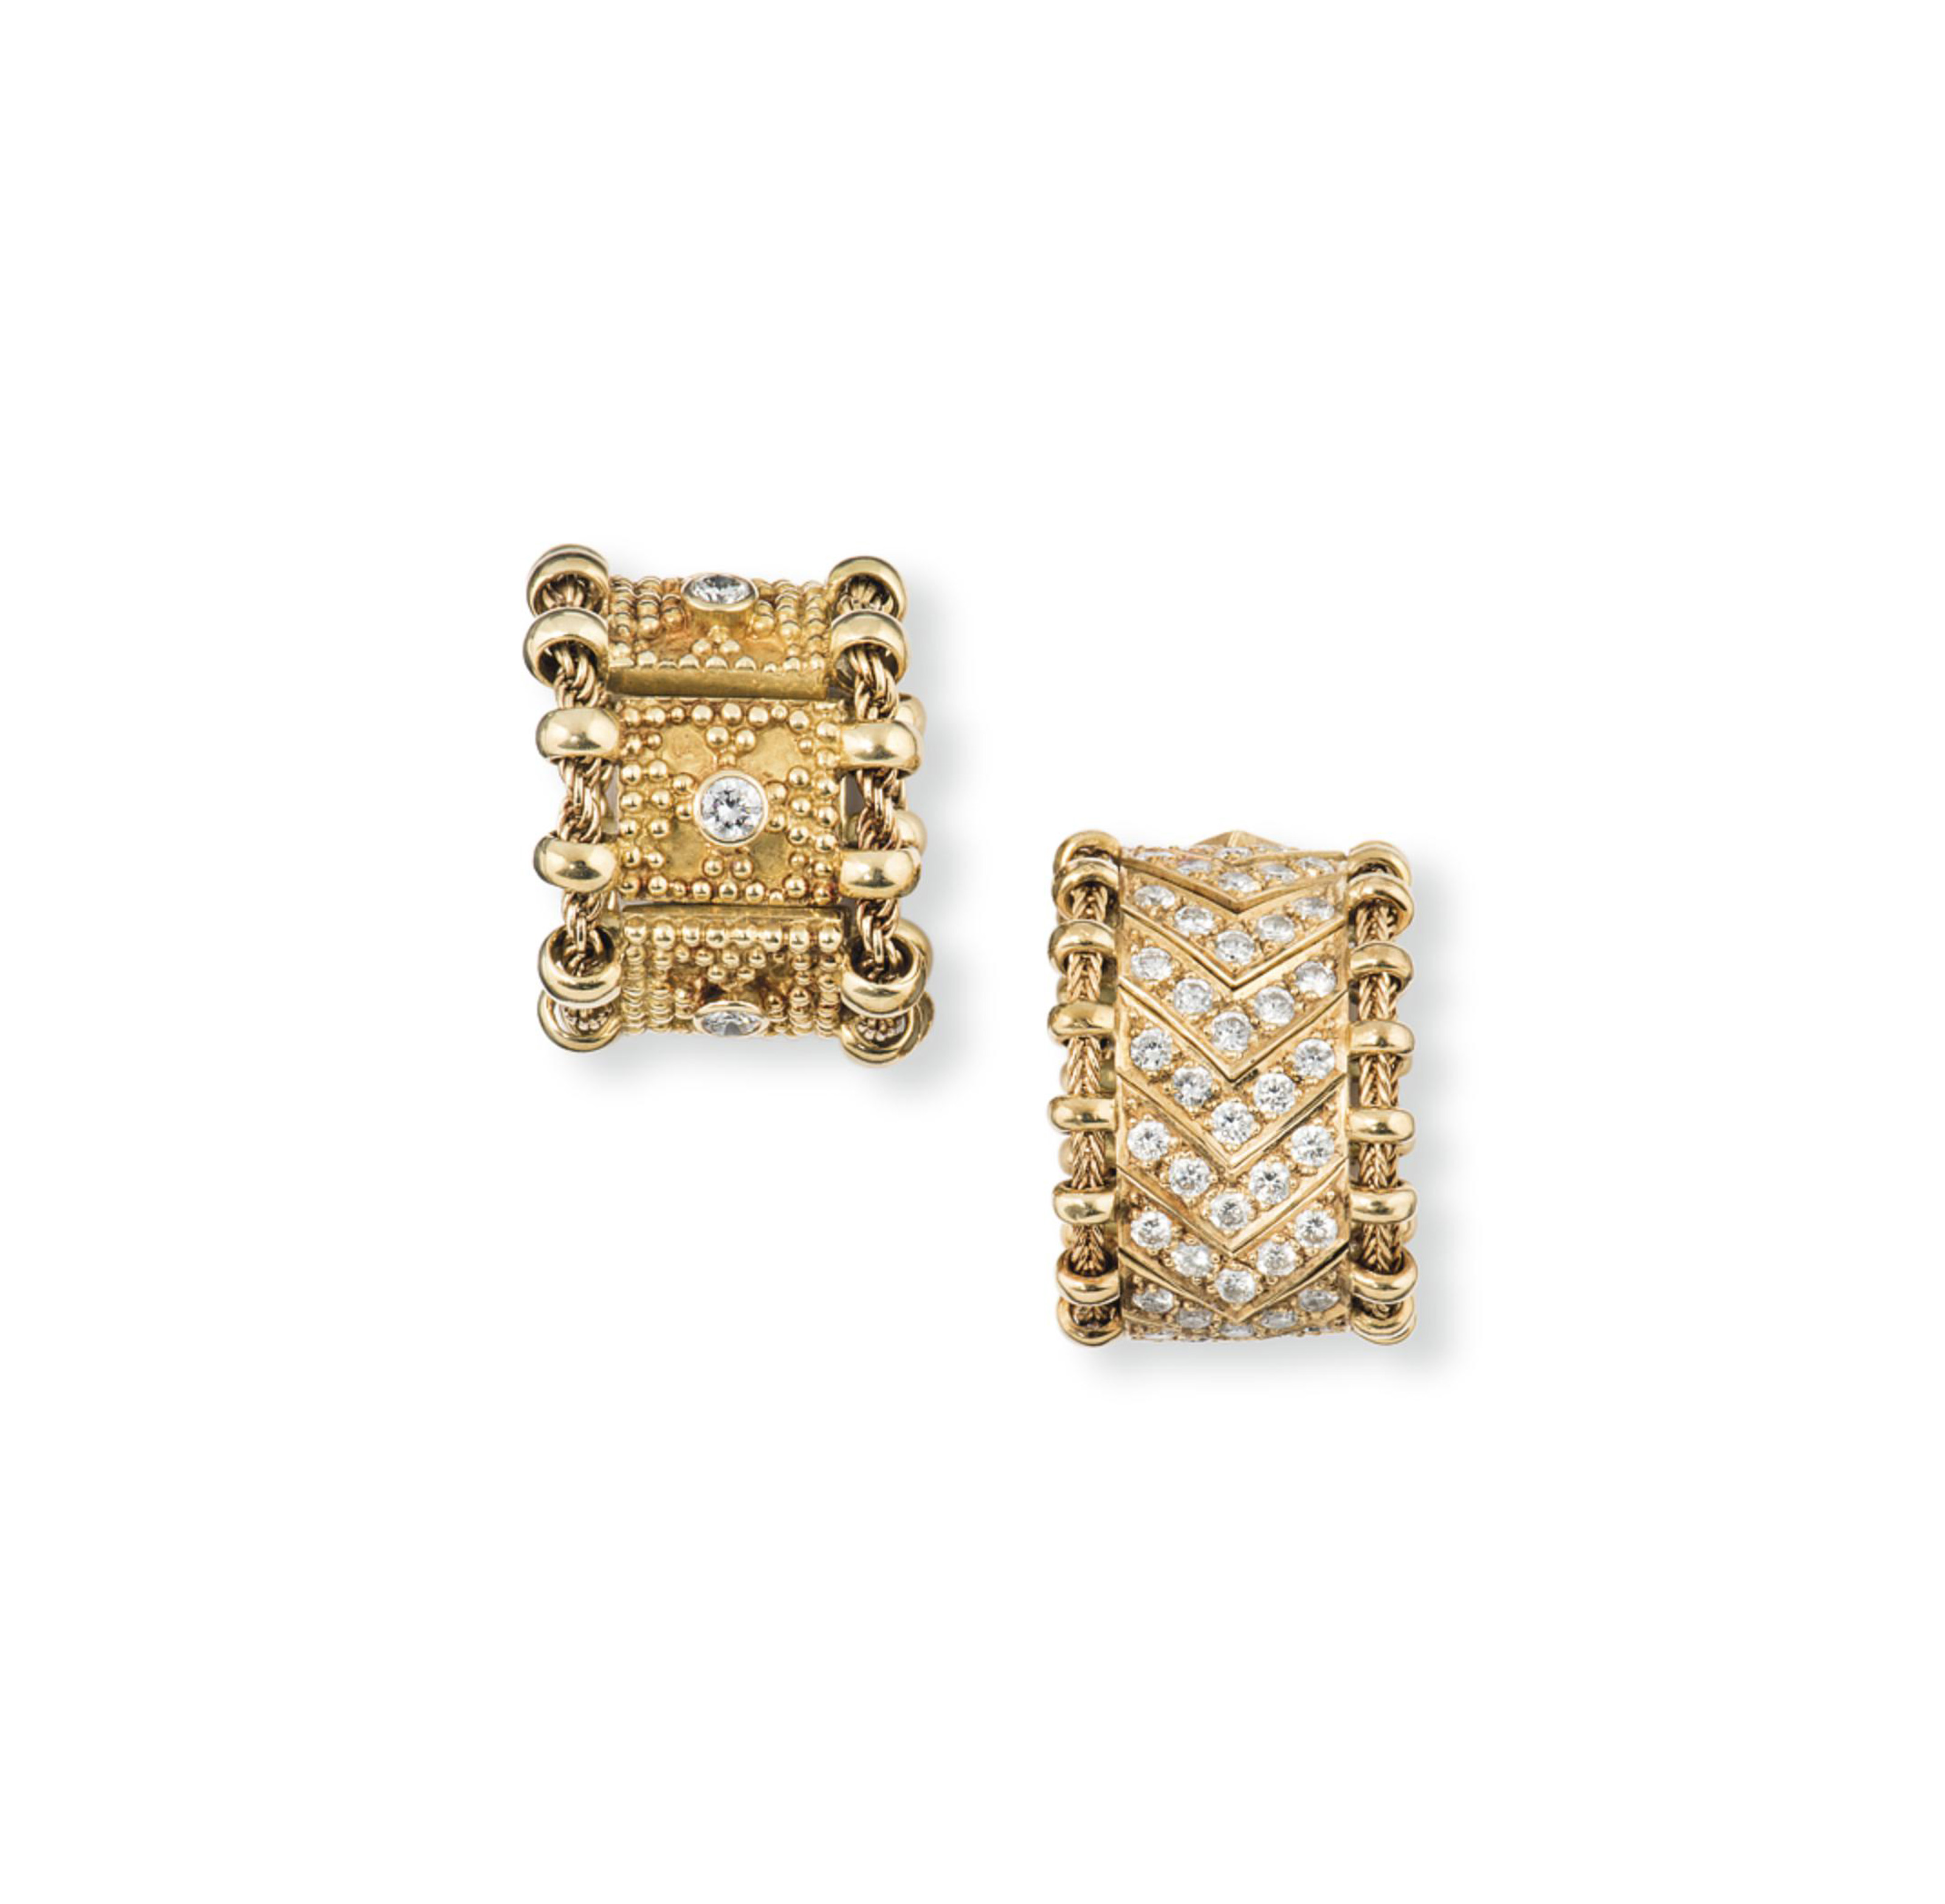 TWO 18CT GOLD AND DIAMOND-SET RINGS, BY ELIZABETH GAGE